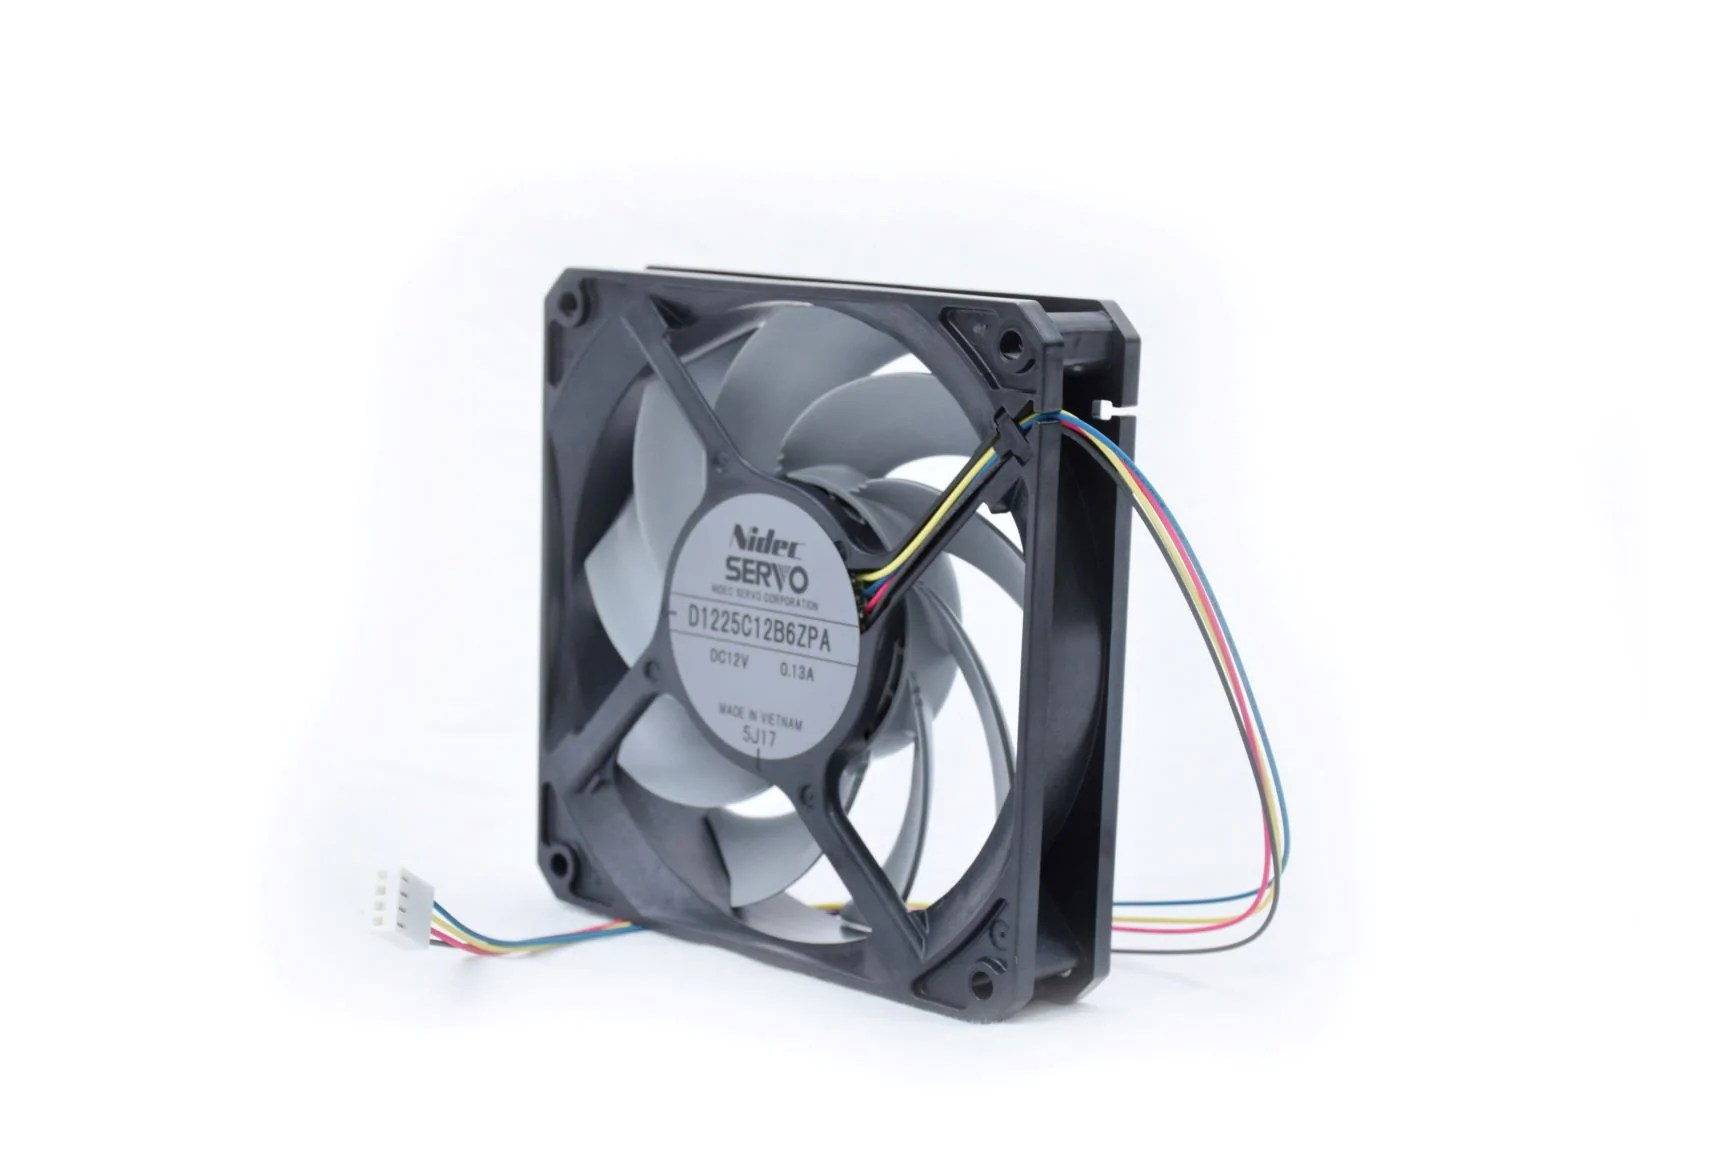 medium resolution of gentletyphoon 120x120x25mm silent case fan series d1225c12b